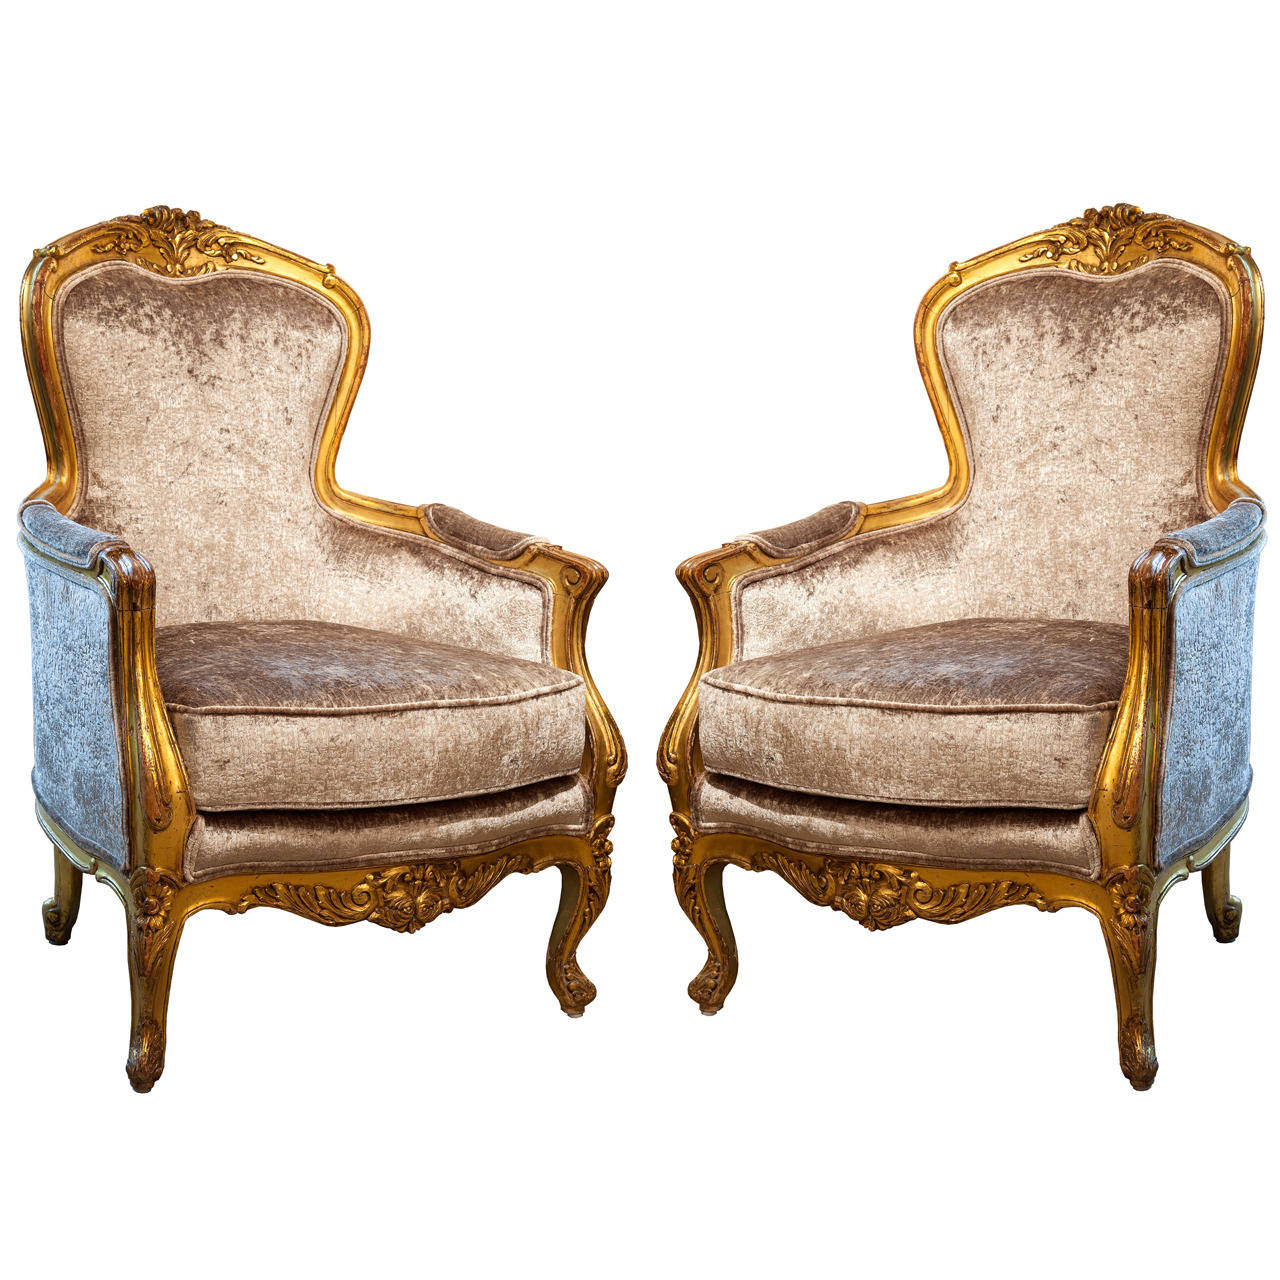 Antique french th c gilt wood bergere chairs for sale at